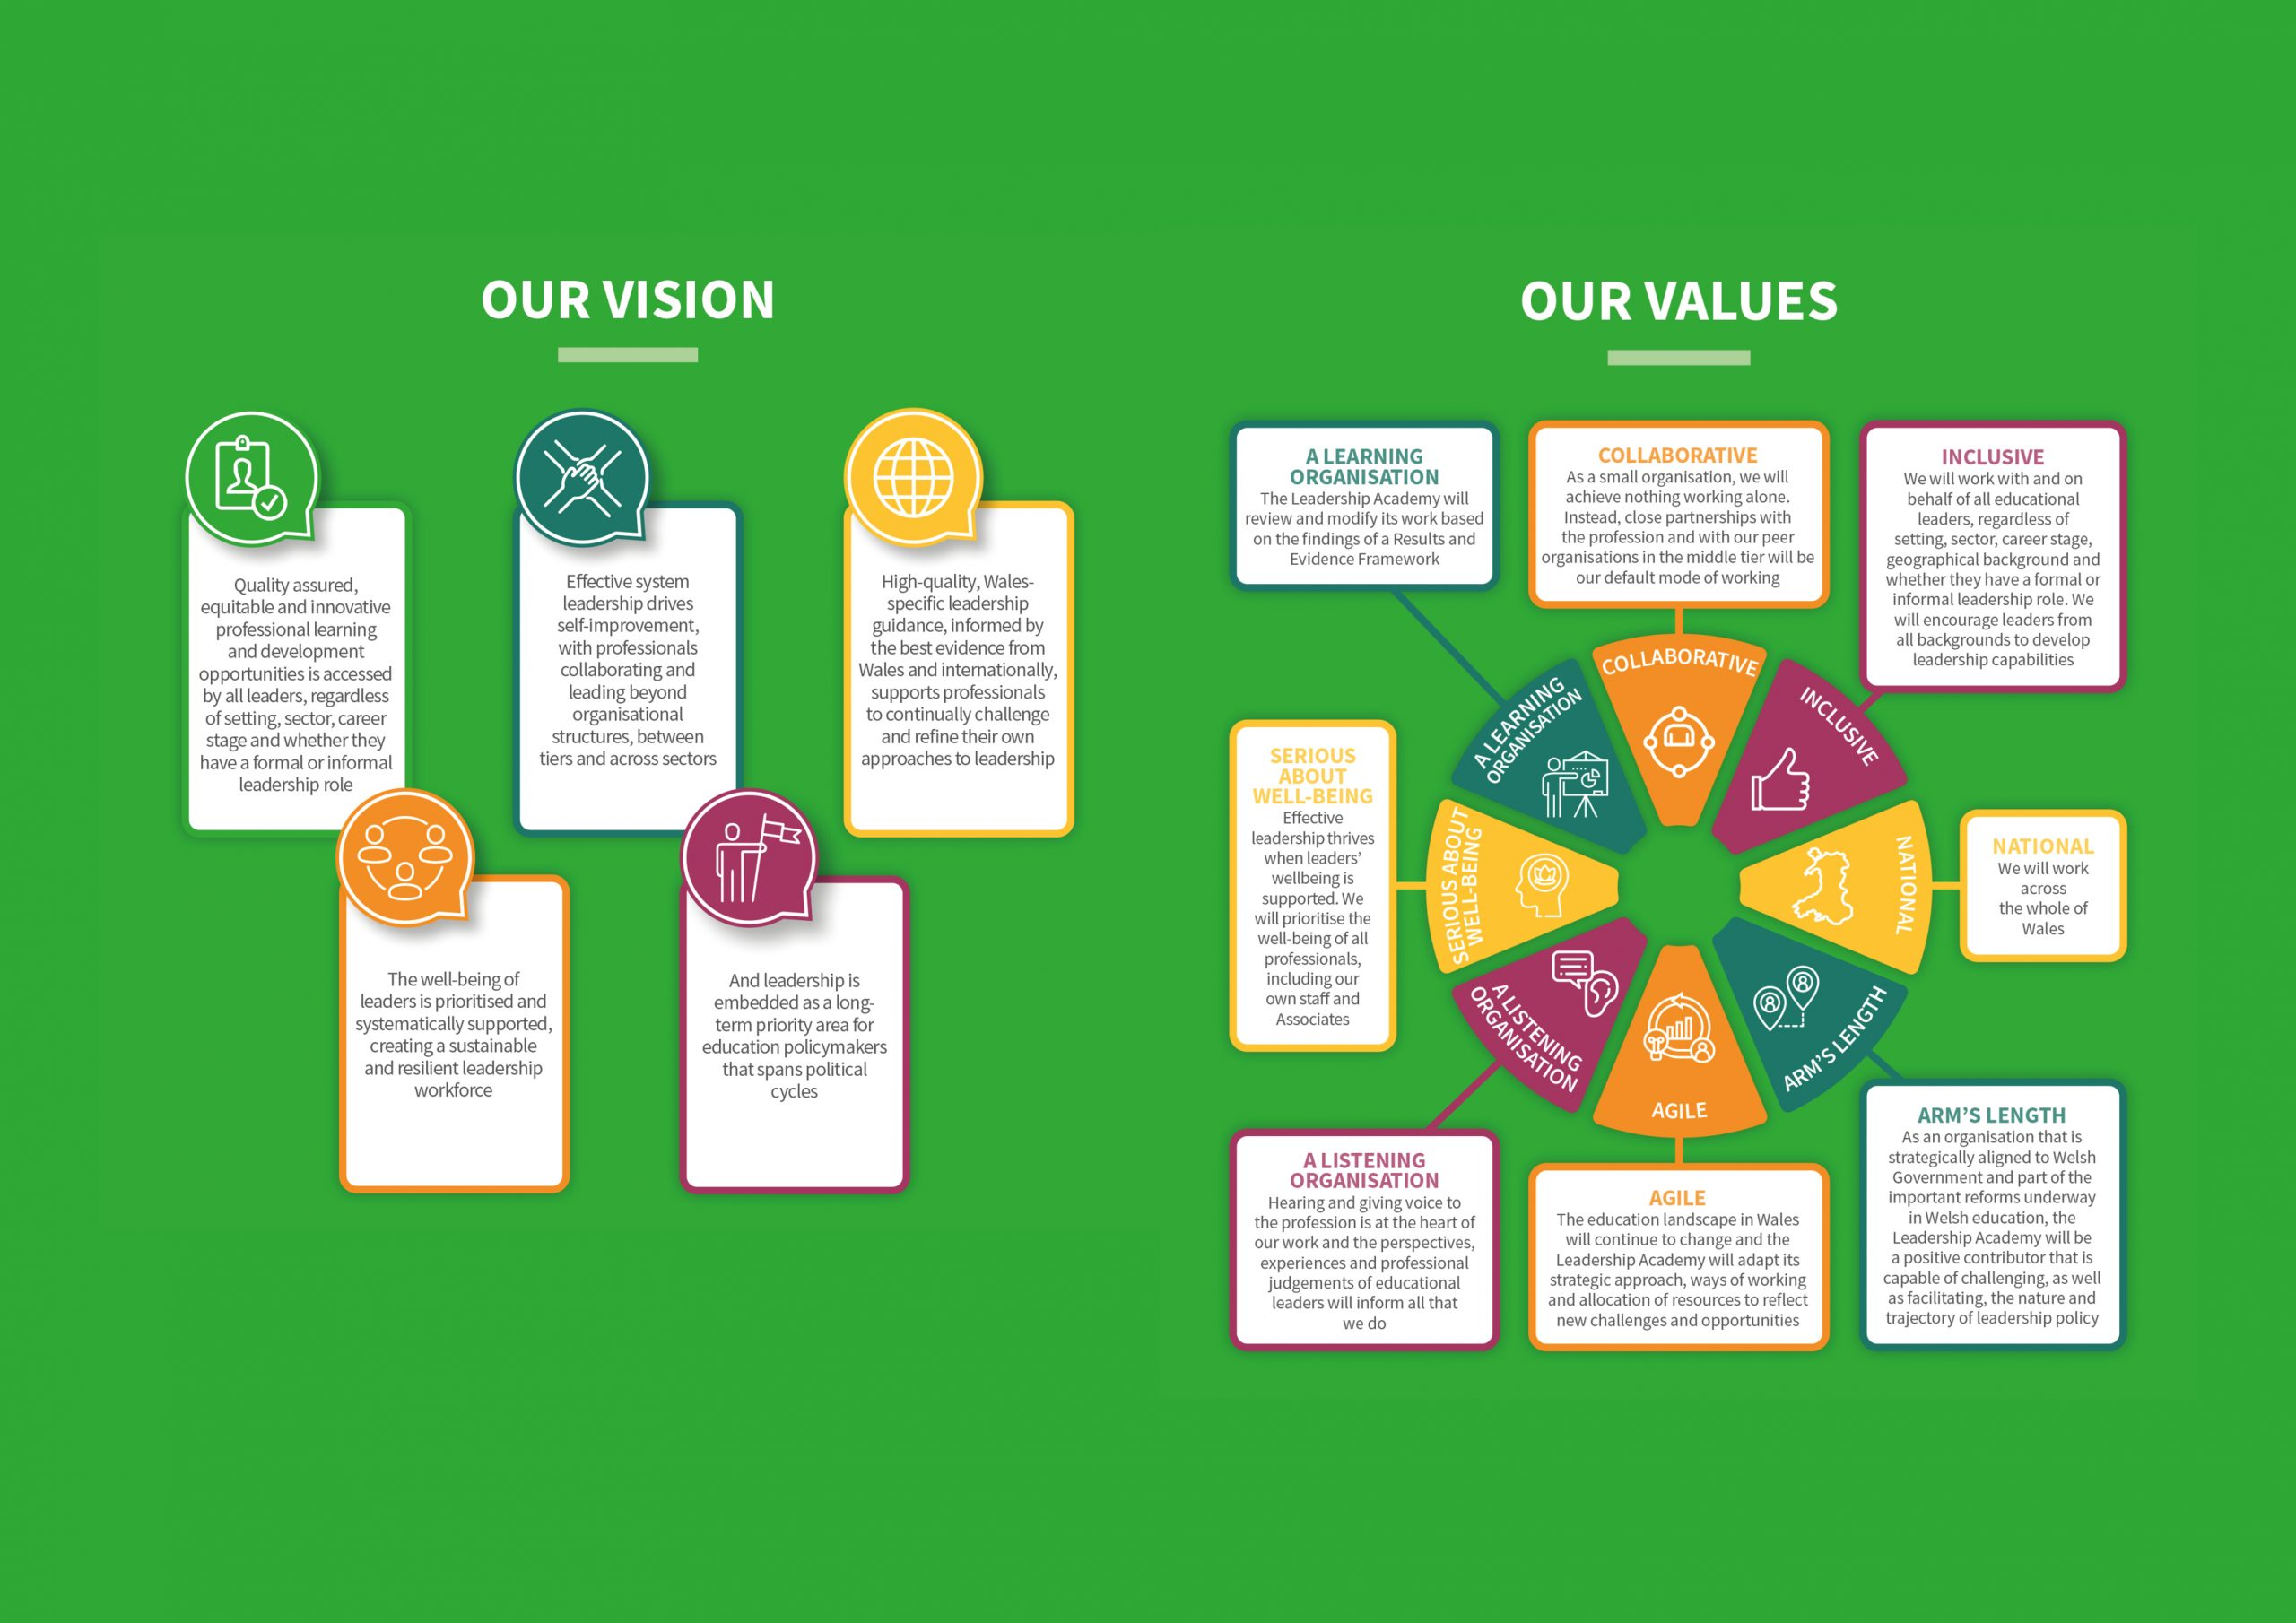 Our Vision and Values graphic in English - nael.cymru